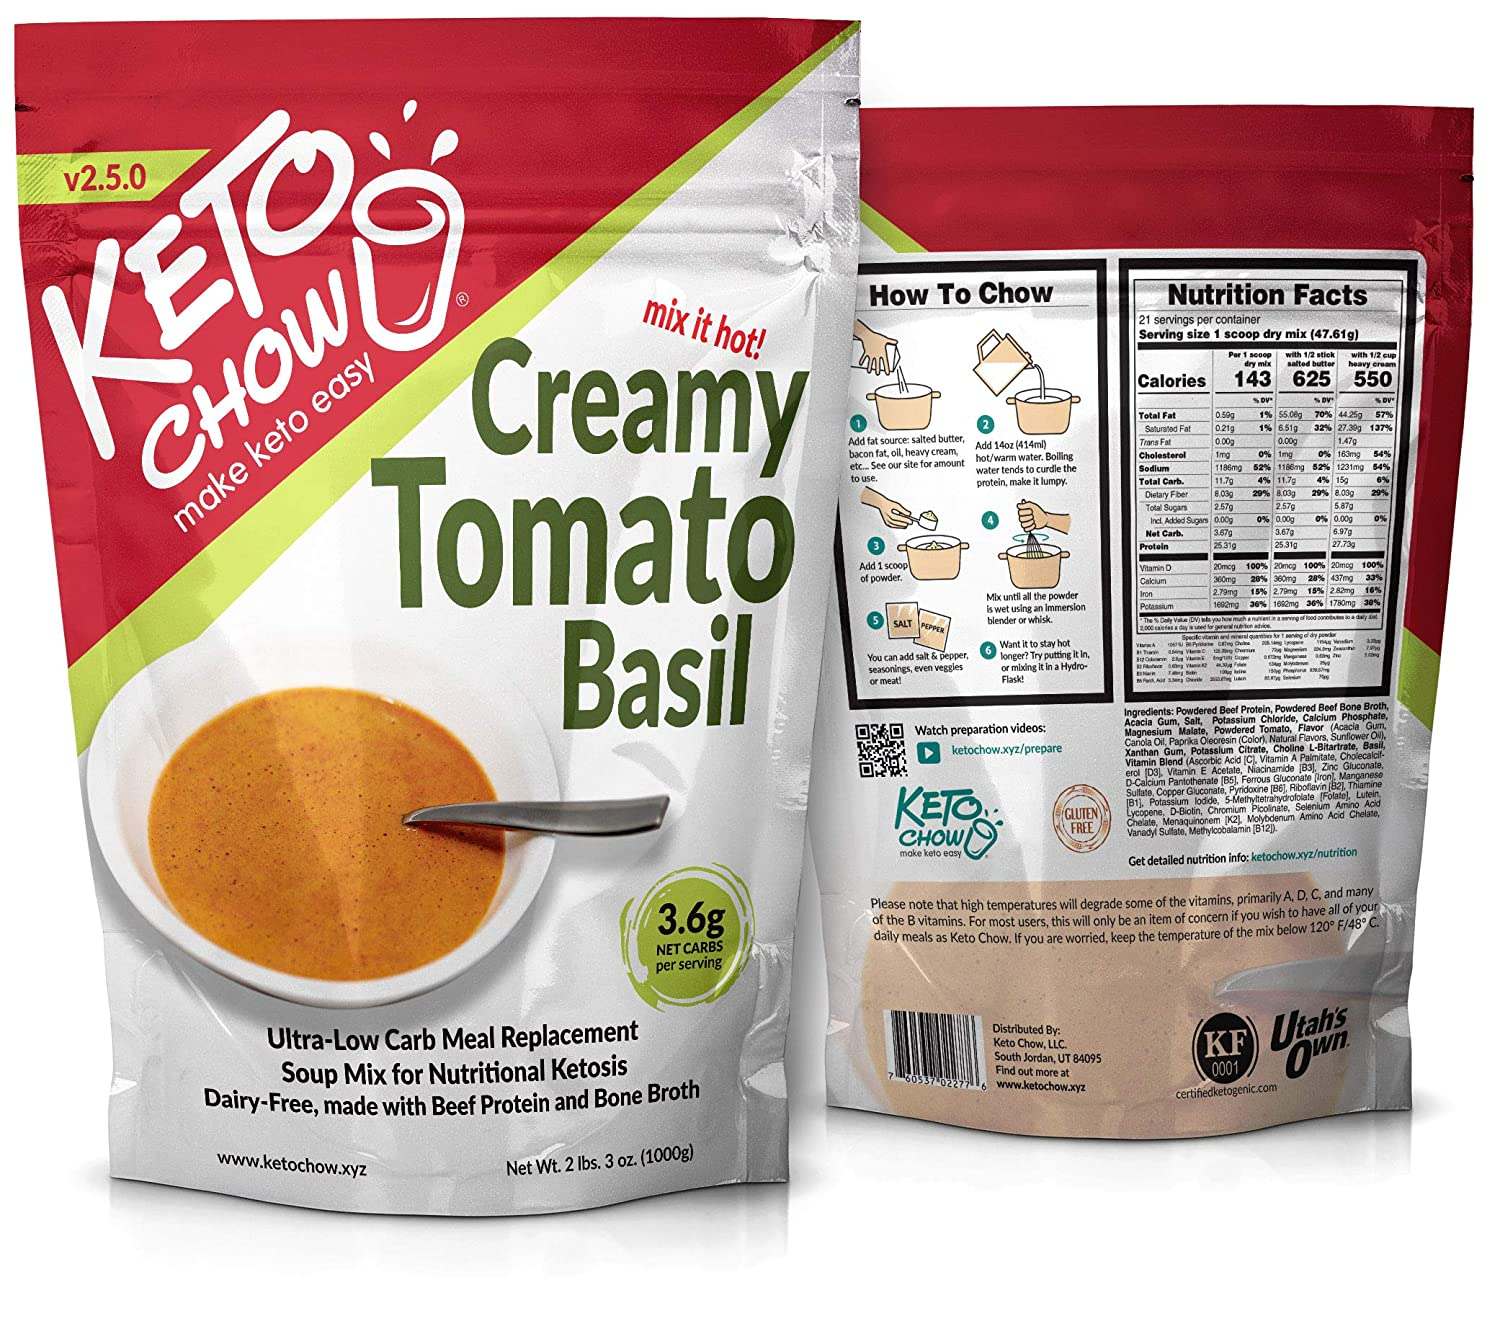 Is heavy cream keto